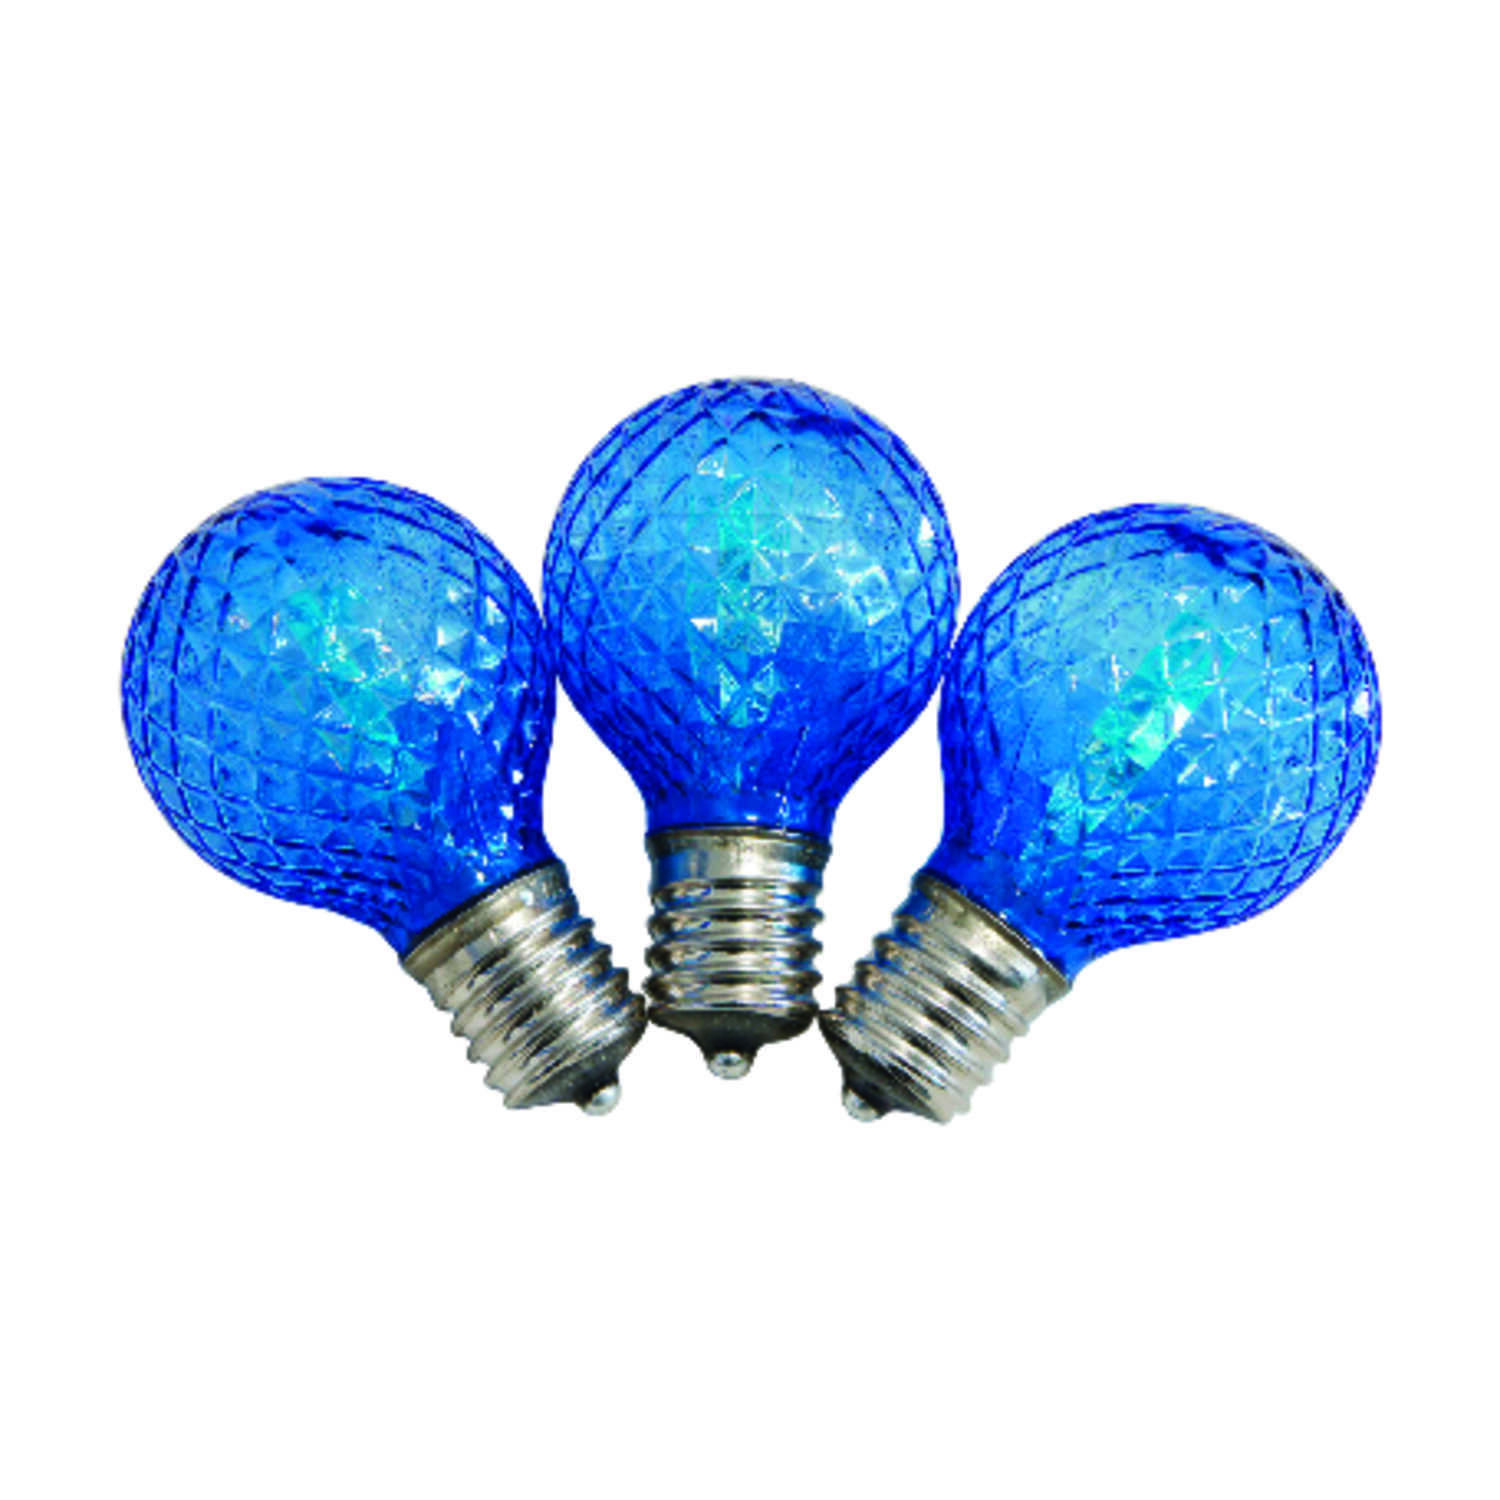 Celebrations  G40  LED  Replacement Bulb  Blue  25 lights